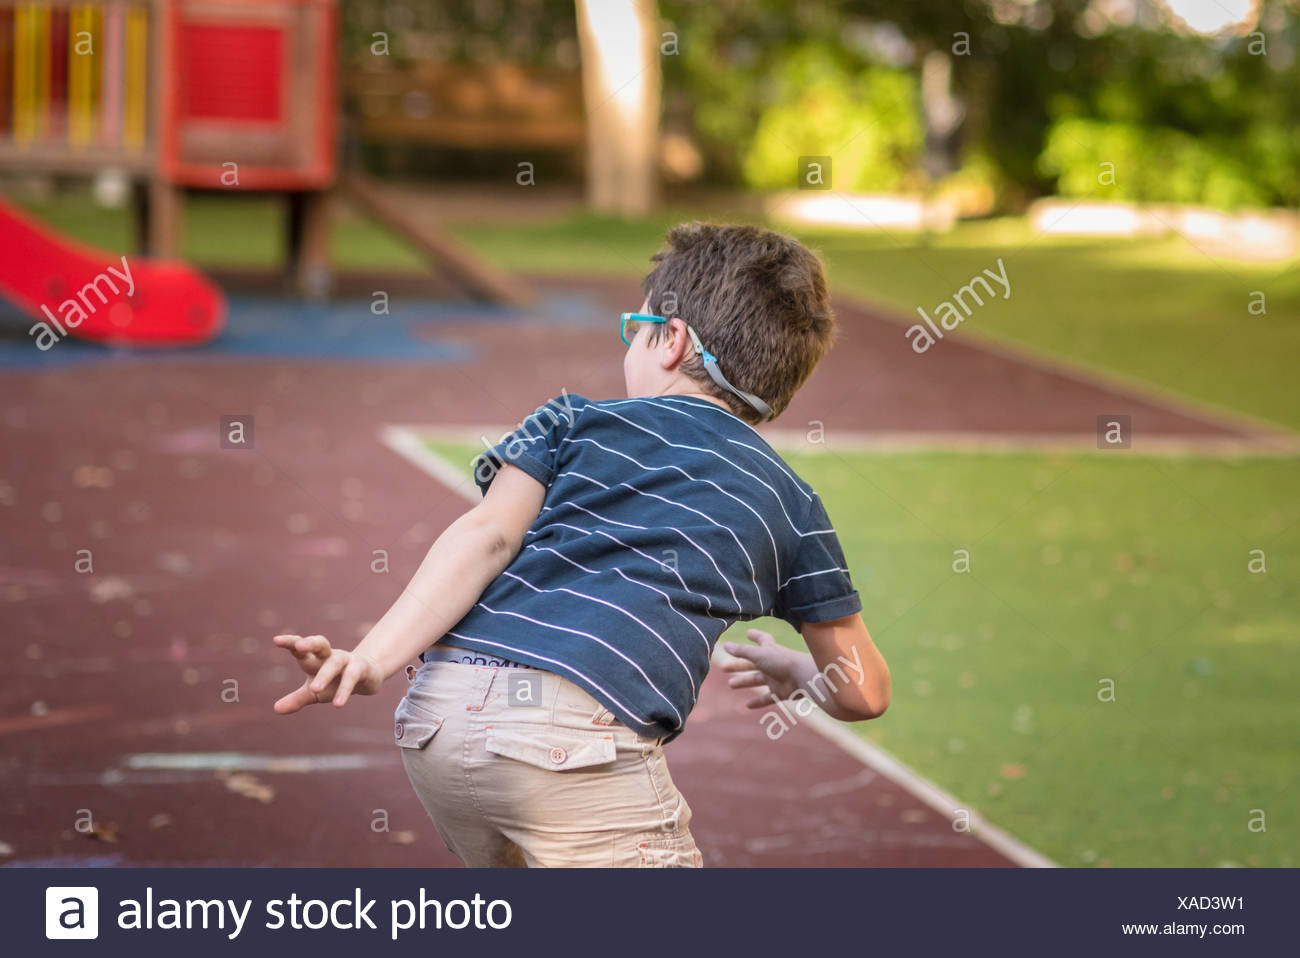 Spain, Valencia, Boy(8-9) playing hide-and-seek in playground - Stock Image